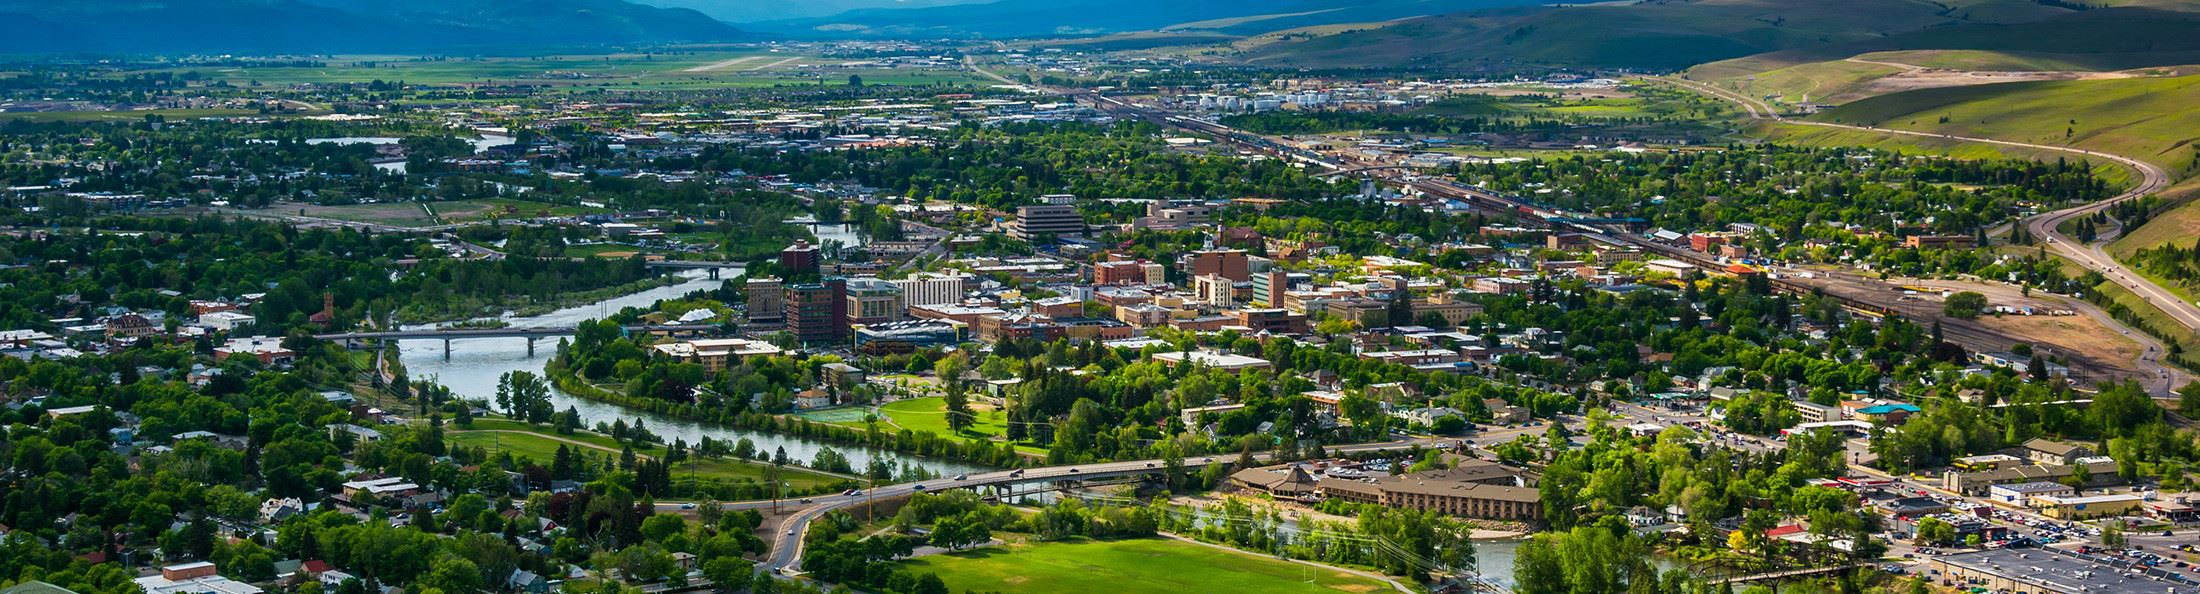 Jobs | Missoula, MT - Official Website